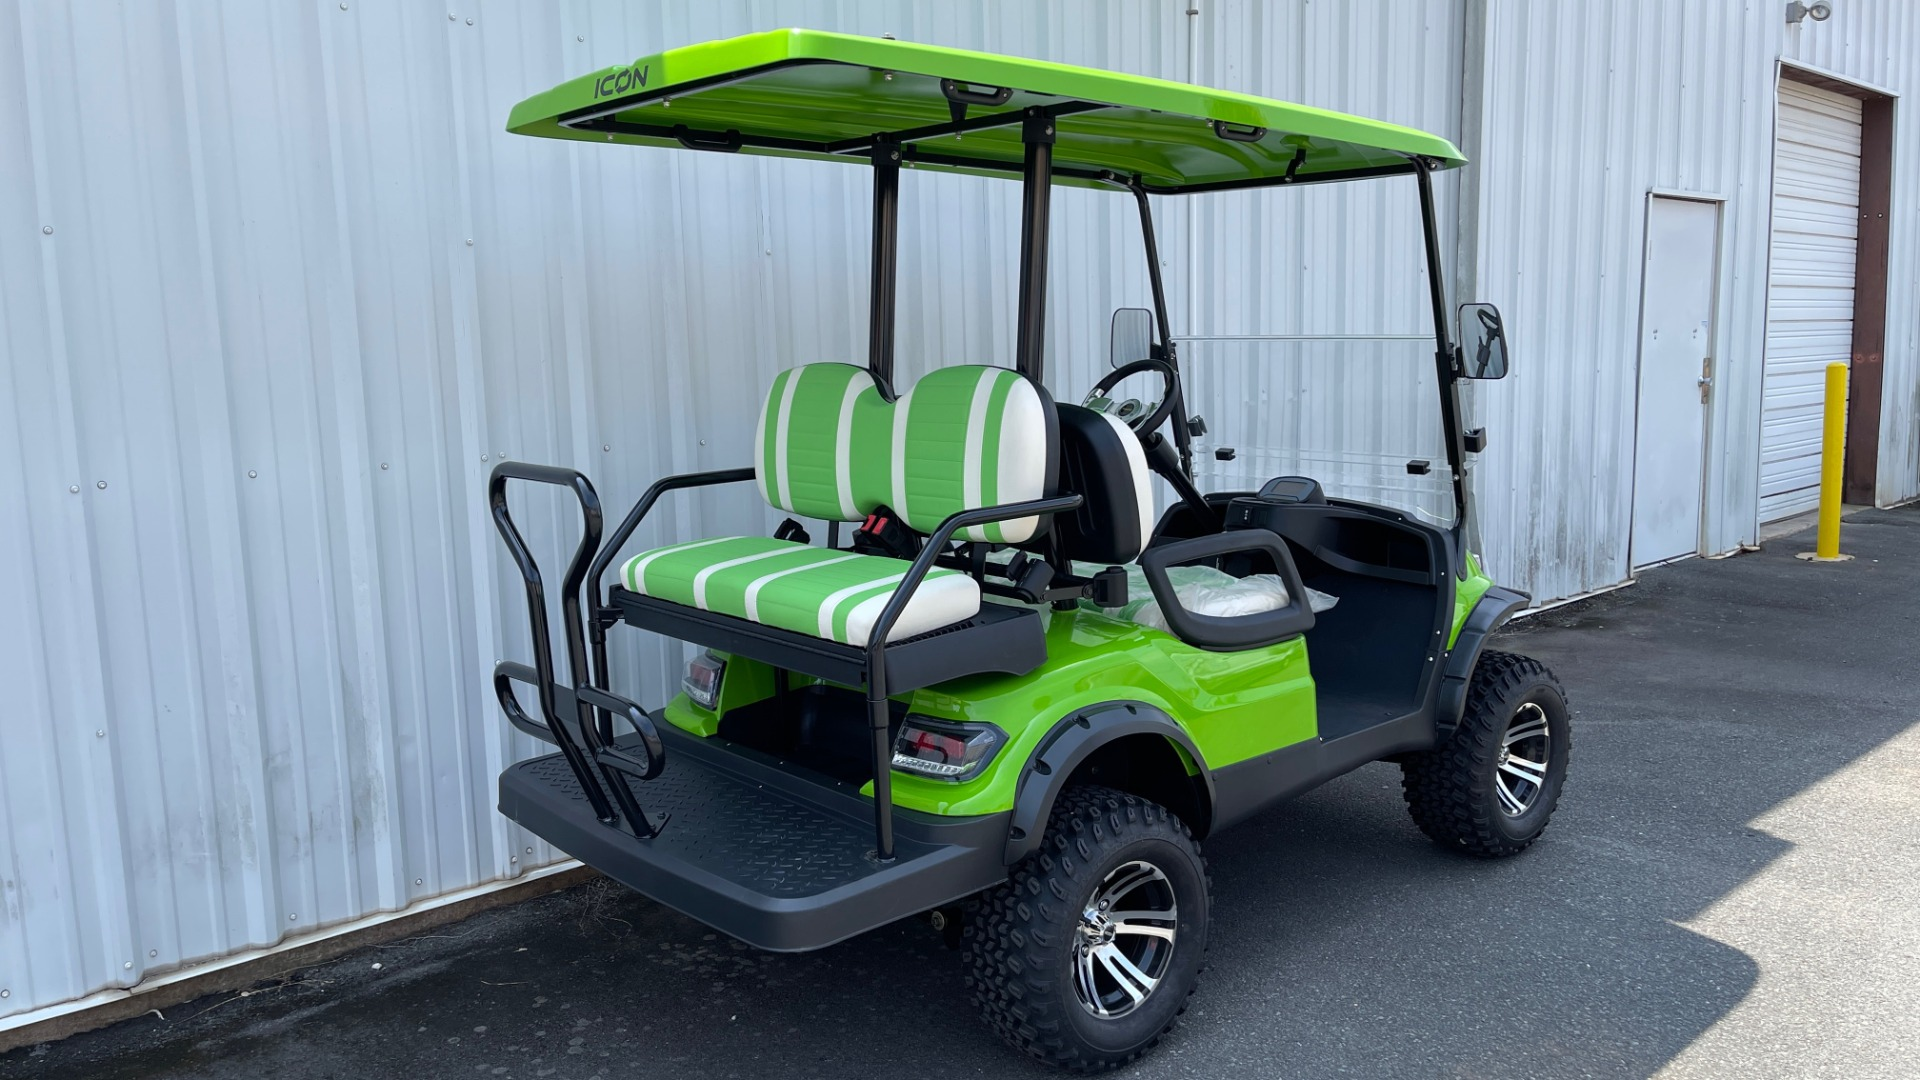 Used 2021 ICON i40L LIFTED ELECTRIC CAR / 4-PASSENGER GOLF CART / 25MPH / NEW / 1-MILE for sale $9,499 at Formula Imports in Charlotte NC 28227 4